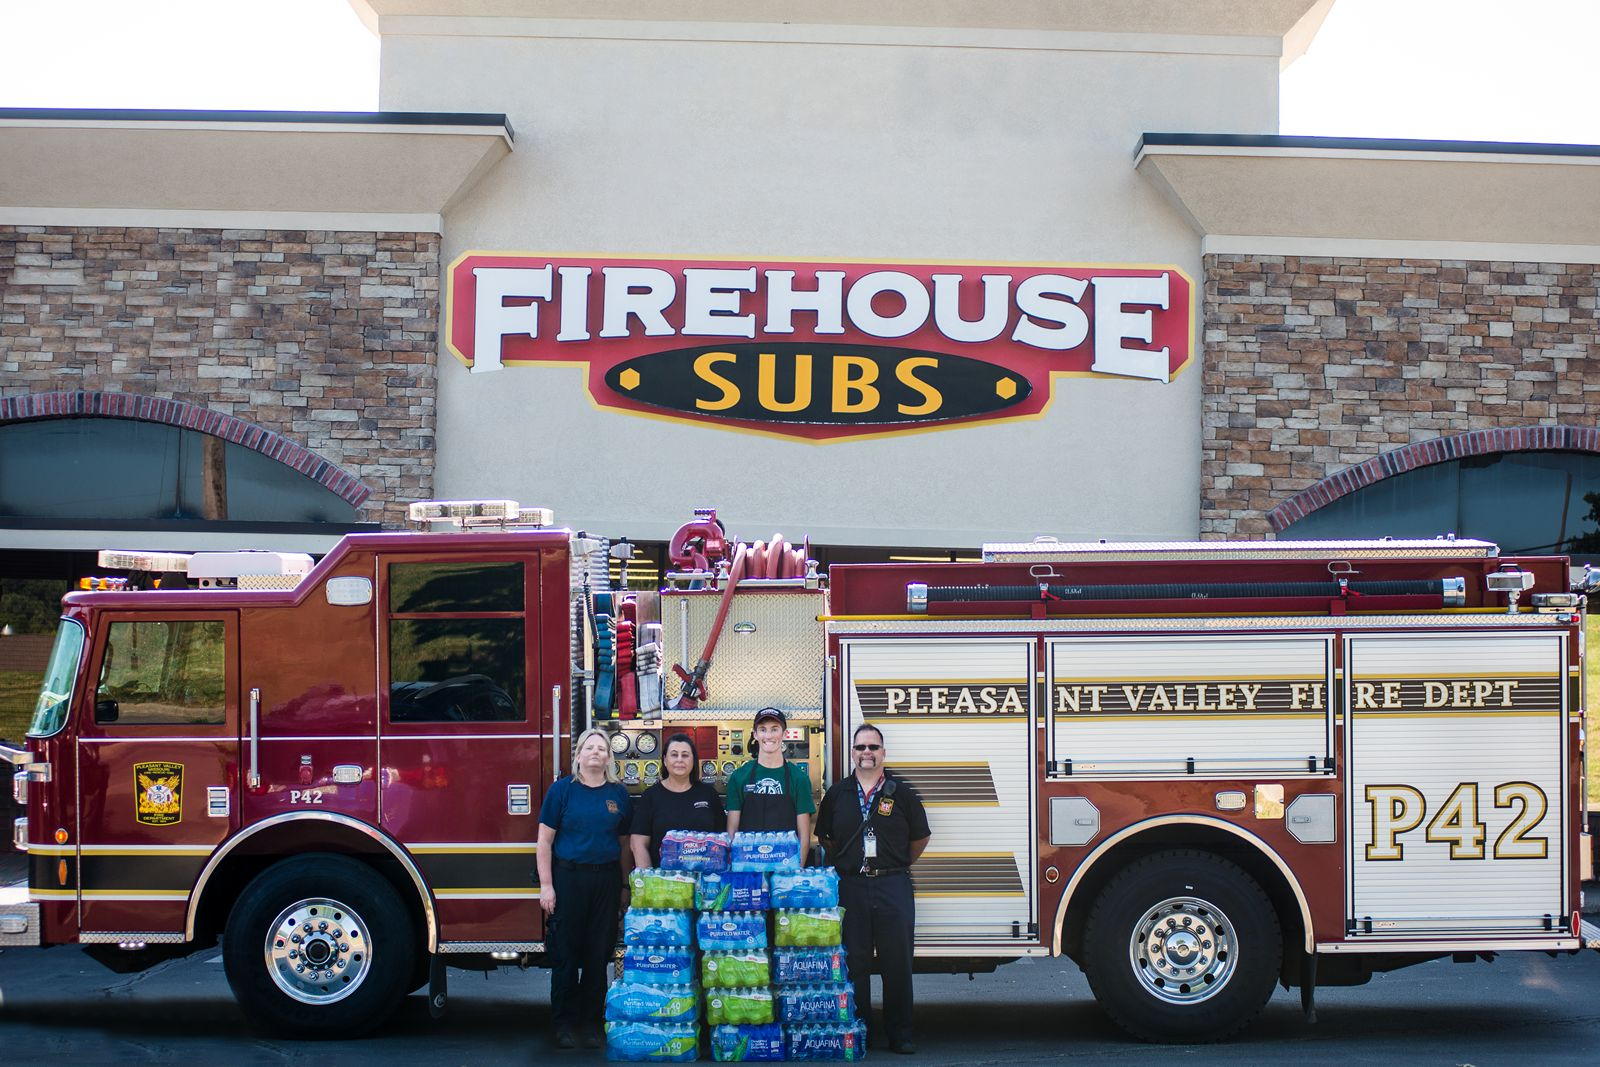 Firehouse Subs Quenches Nationwide Need Amidst Record-Breaking Summer Temperatures with Ninth Annual H2O For Heroes